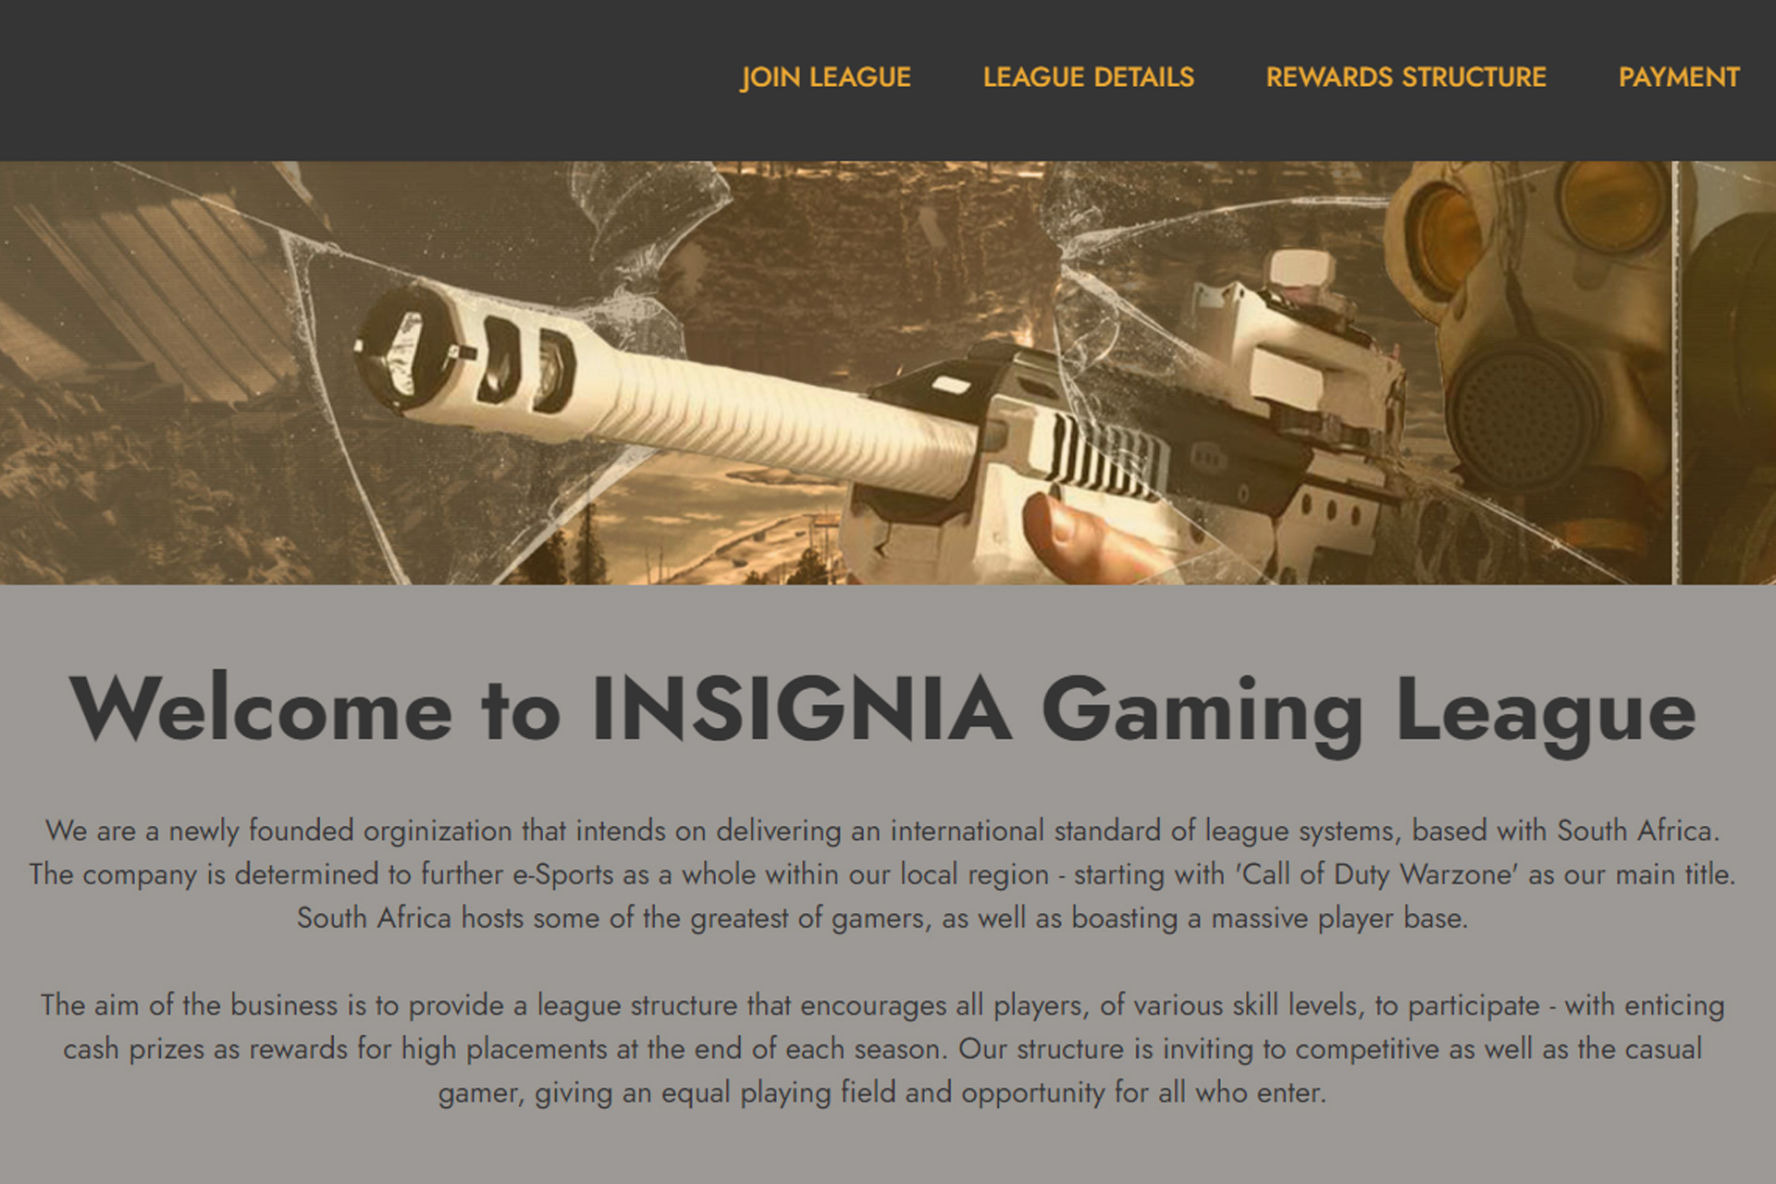 Insignia Gaming League